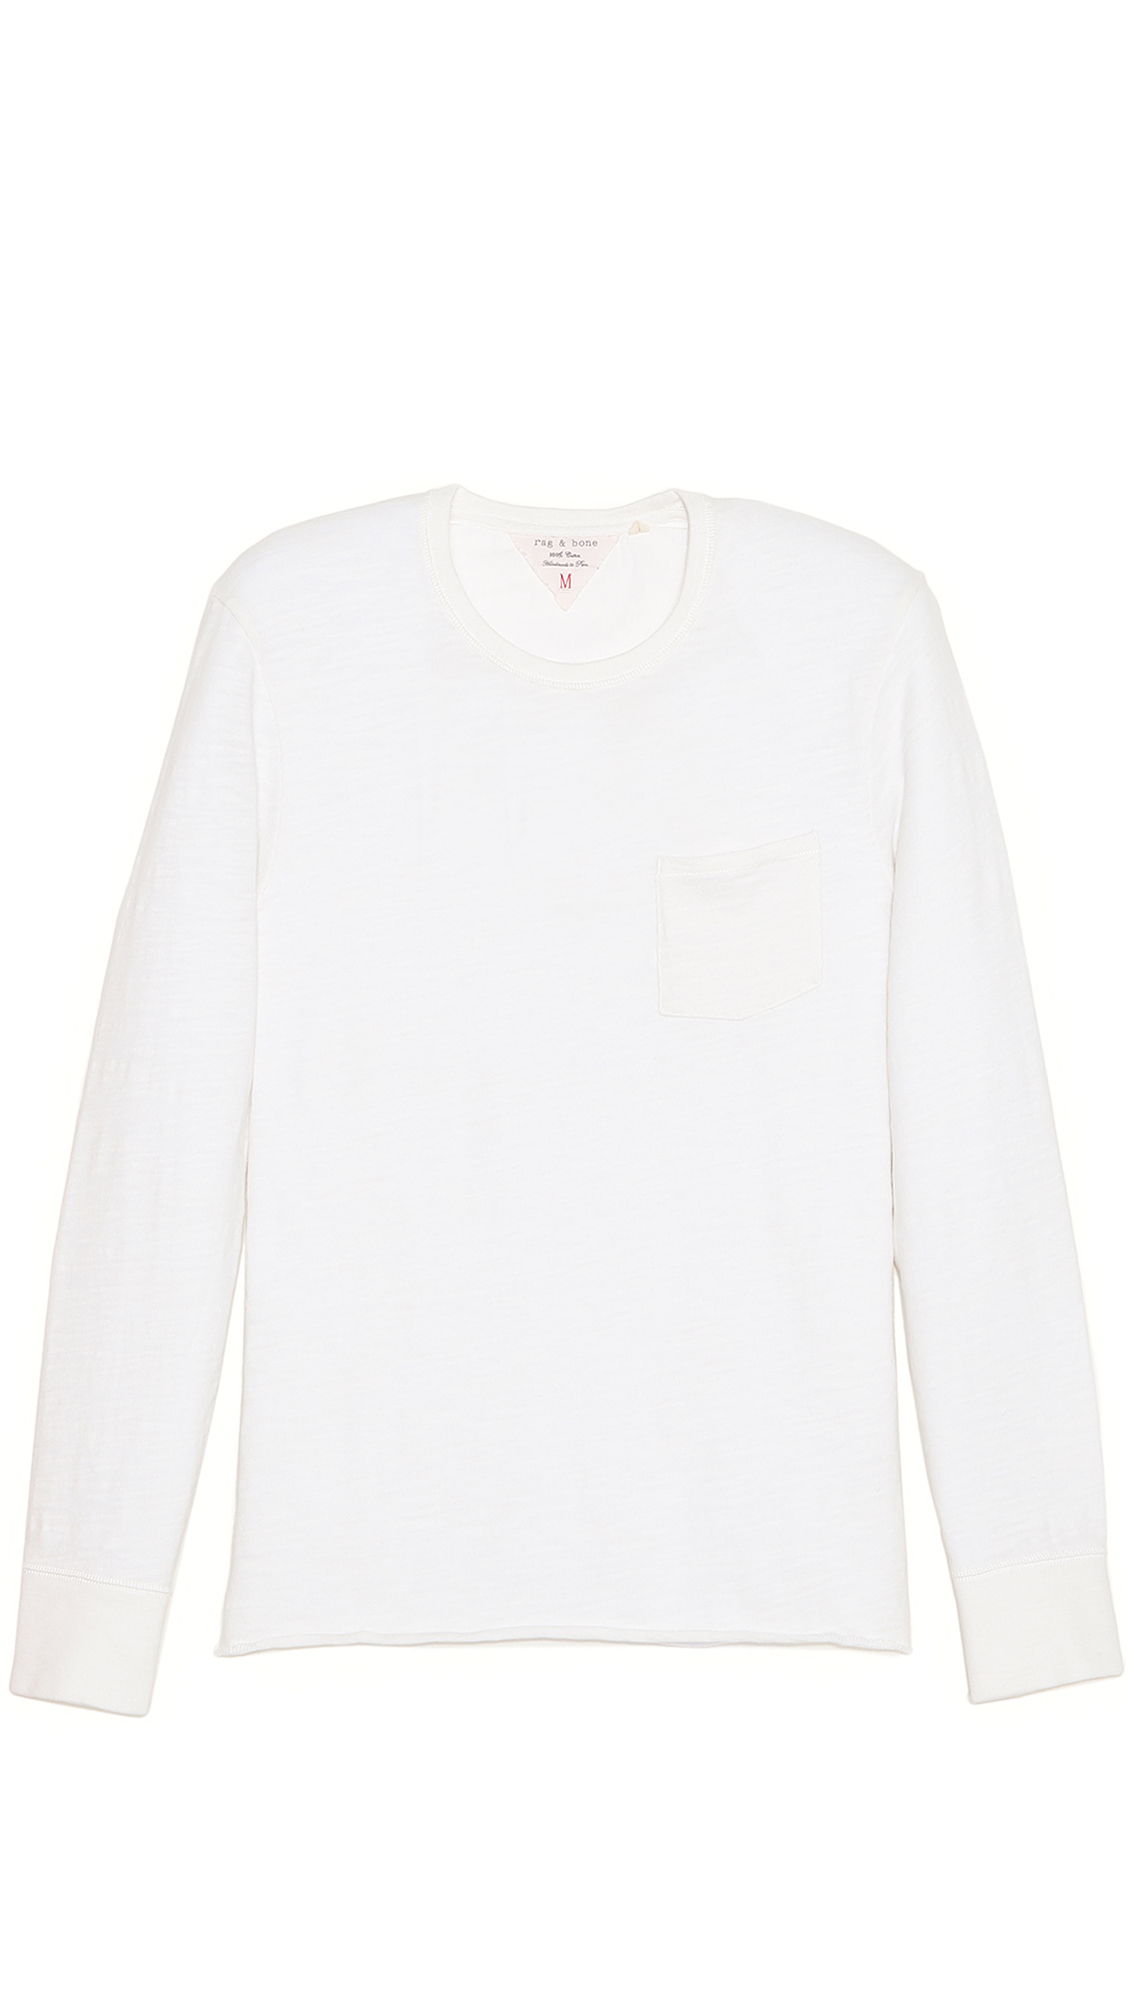 Rag bone long sleeve pocket t shirt in white for men lyst Mens long sleeve white t shirt